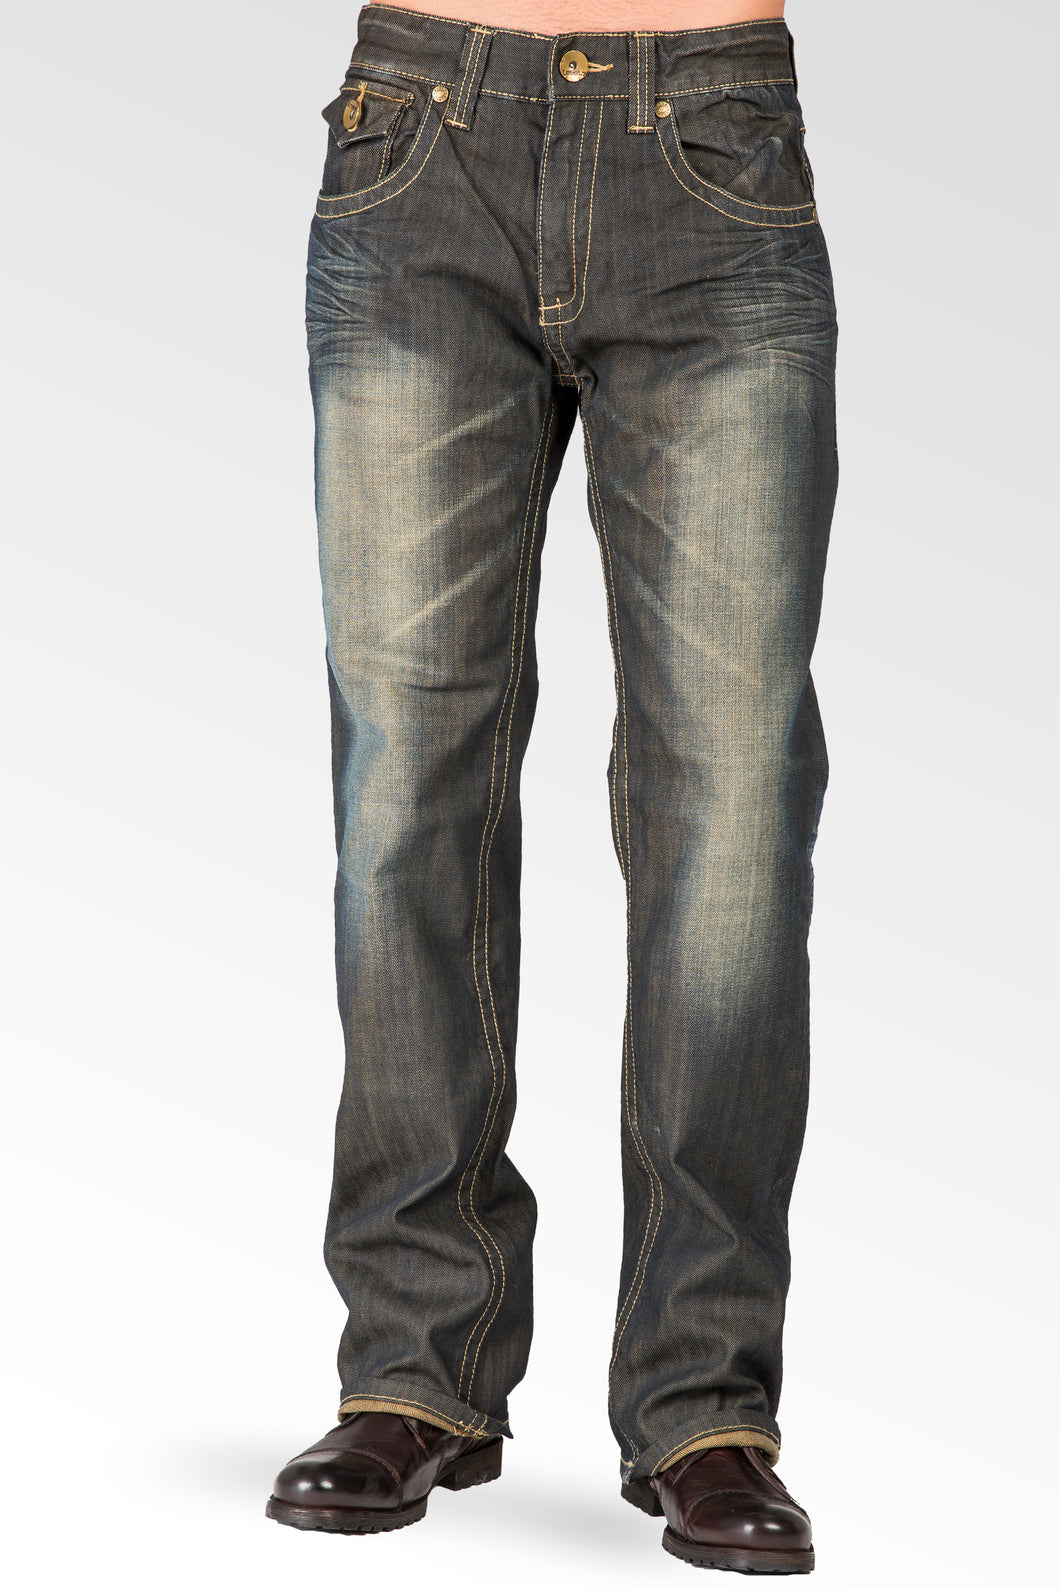 Relaxed Bootcut Dark Tinted Premium Denim Jeans Zipper Trim & Utility Back Pocket